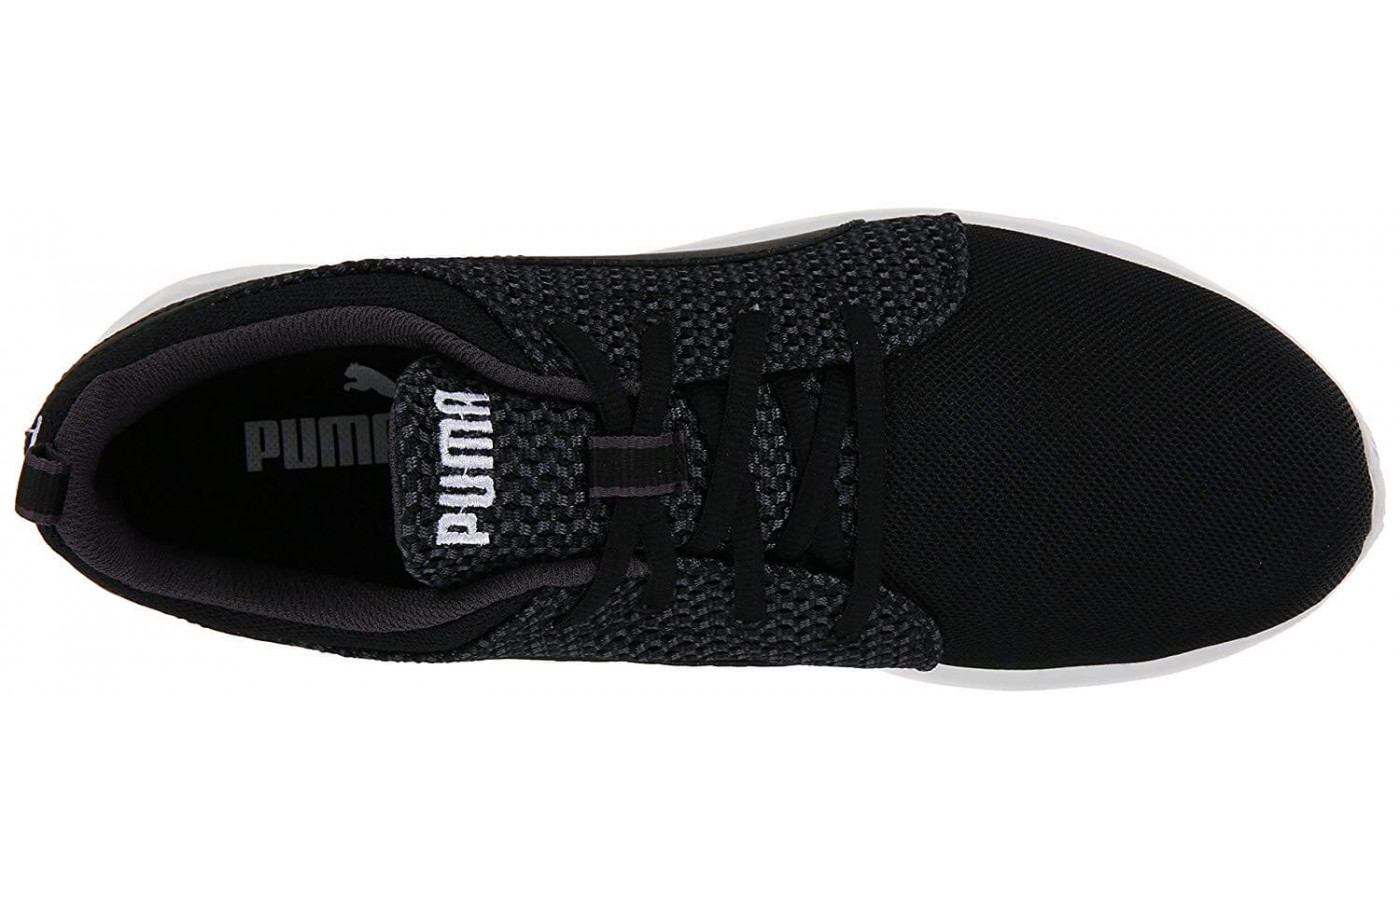 The Puma Carson Runner Knit lacing system provides support